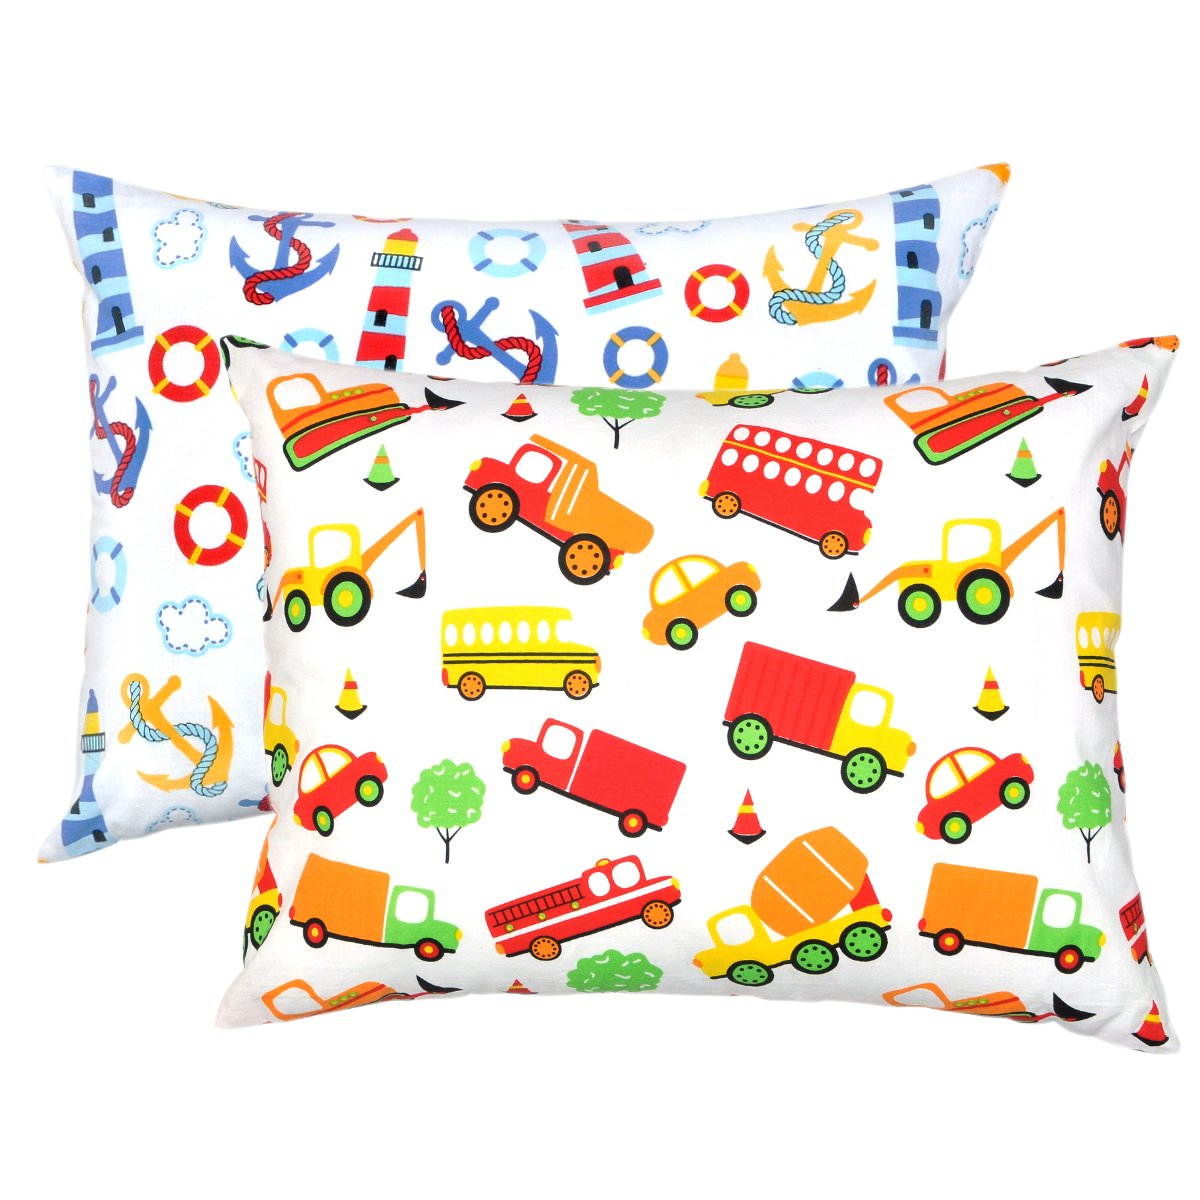 YourEcoFamily Top Quality Toddler Pillowcases - 100% Certified Organic Cotton - Soft, Comfy, Colorful, Naturally Hypoallergenic - Unisex 2 Pack SYNCHKG091779